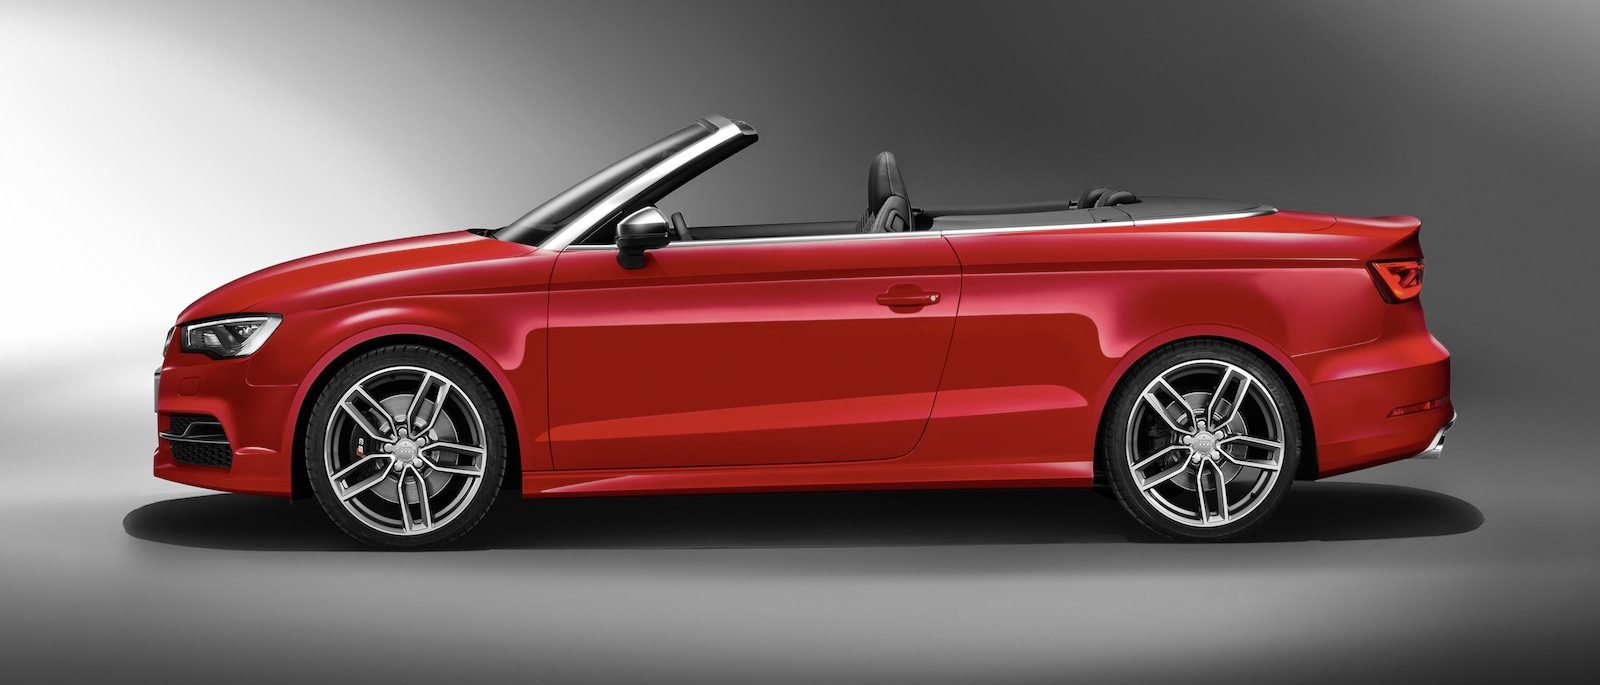 audi s3 cabriolet performance drop top here in november photos 1 of 8. Black Bedroom Furniture Sets. Home Design Ideas